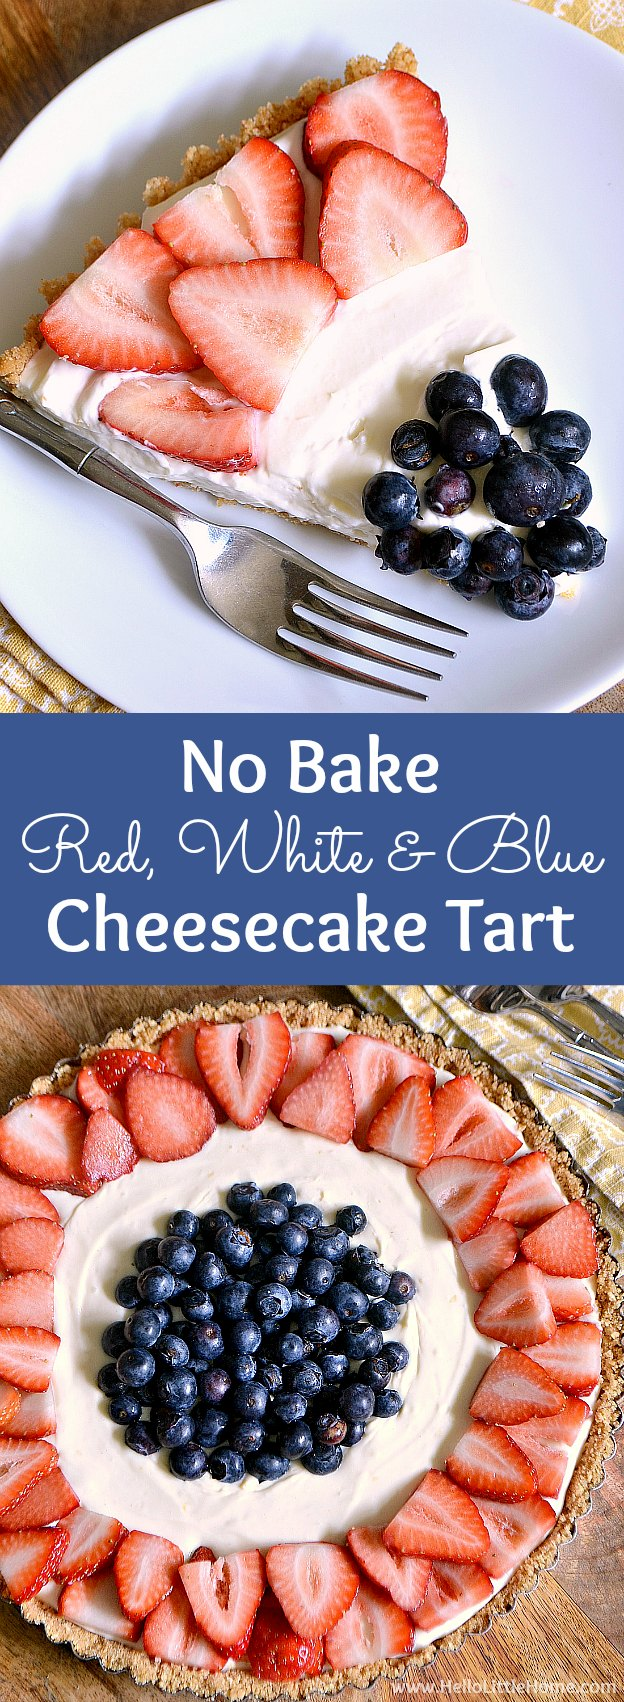 No Bake Red, White, and Blue Cheesecake Tart ... perfect for every summer party! This easy no bake cheesecake recipe is lightly flavored with lemon, made with a simple graham cracker crust, and topped with fresh strawberries and blueberries. An easy patriotic dessert recipe that's perfect for any summer holiday, like 4th of July and Memorial Day! | Hello Little Home